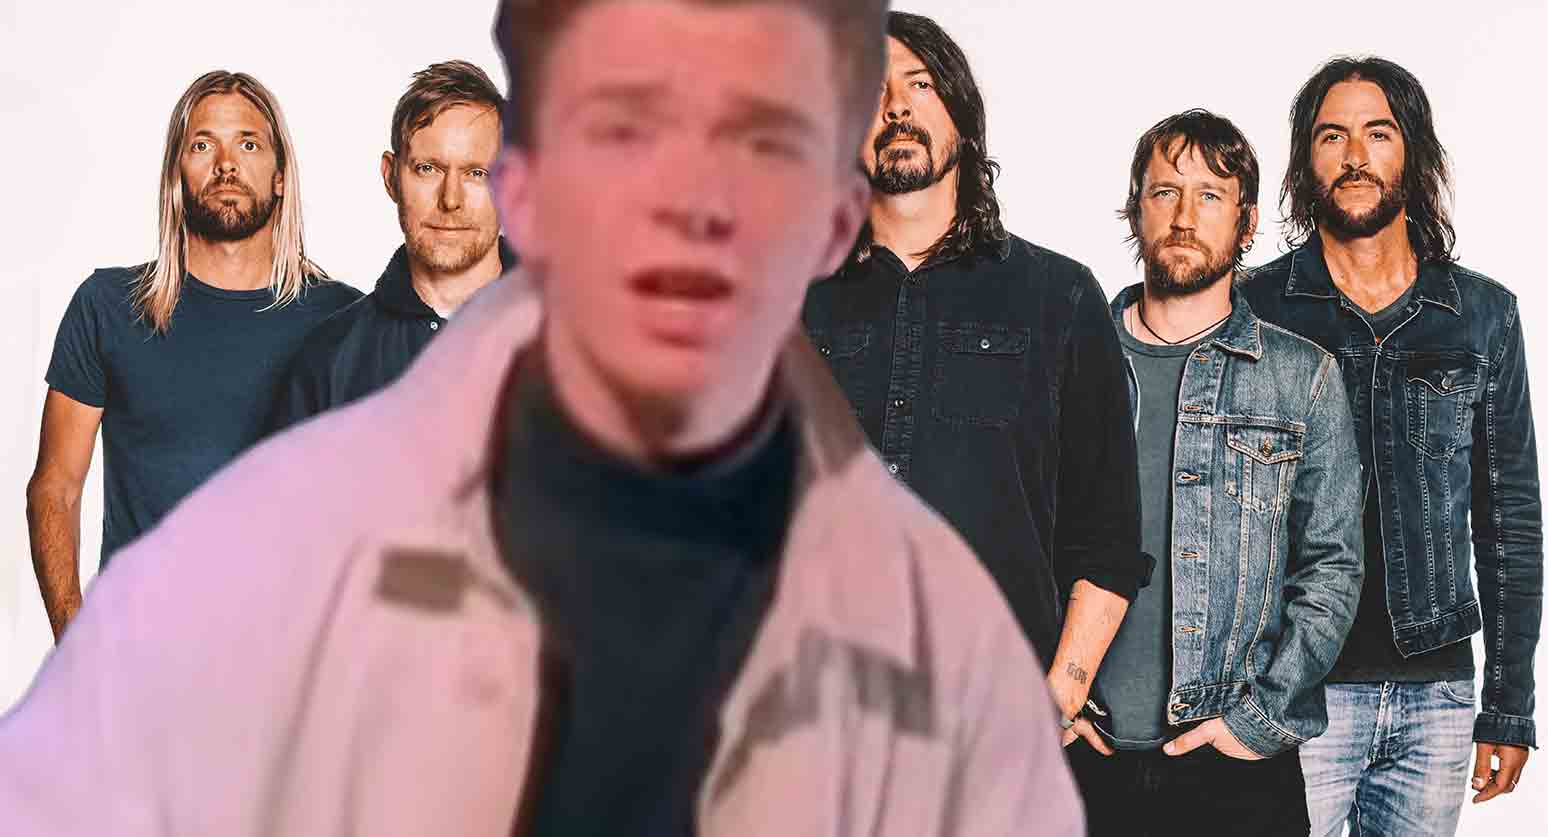 Foo Fighters Rick Rollaði aðdáendur sína og tók Never Gonna Give You Up með Rick Astley